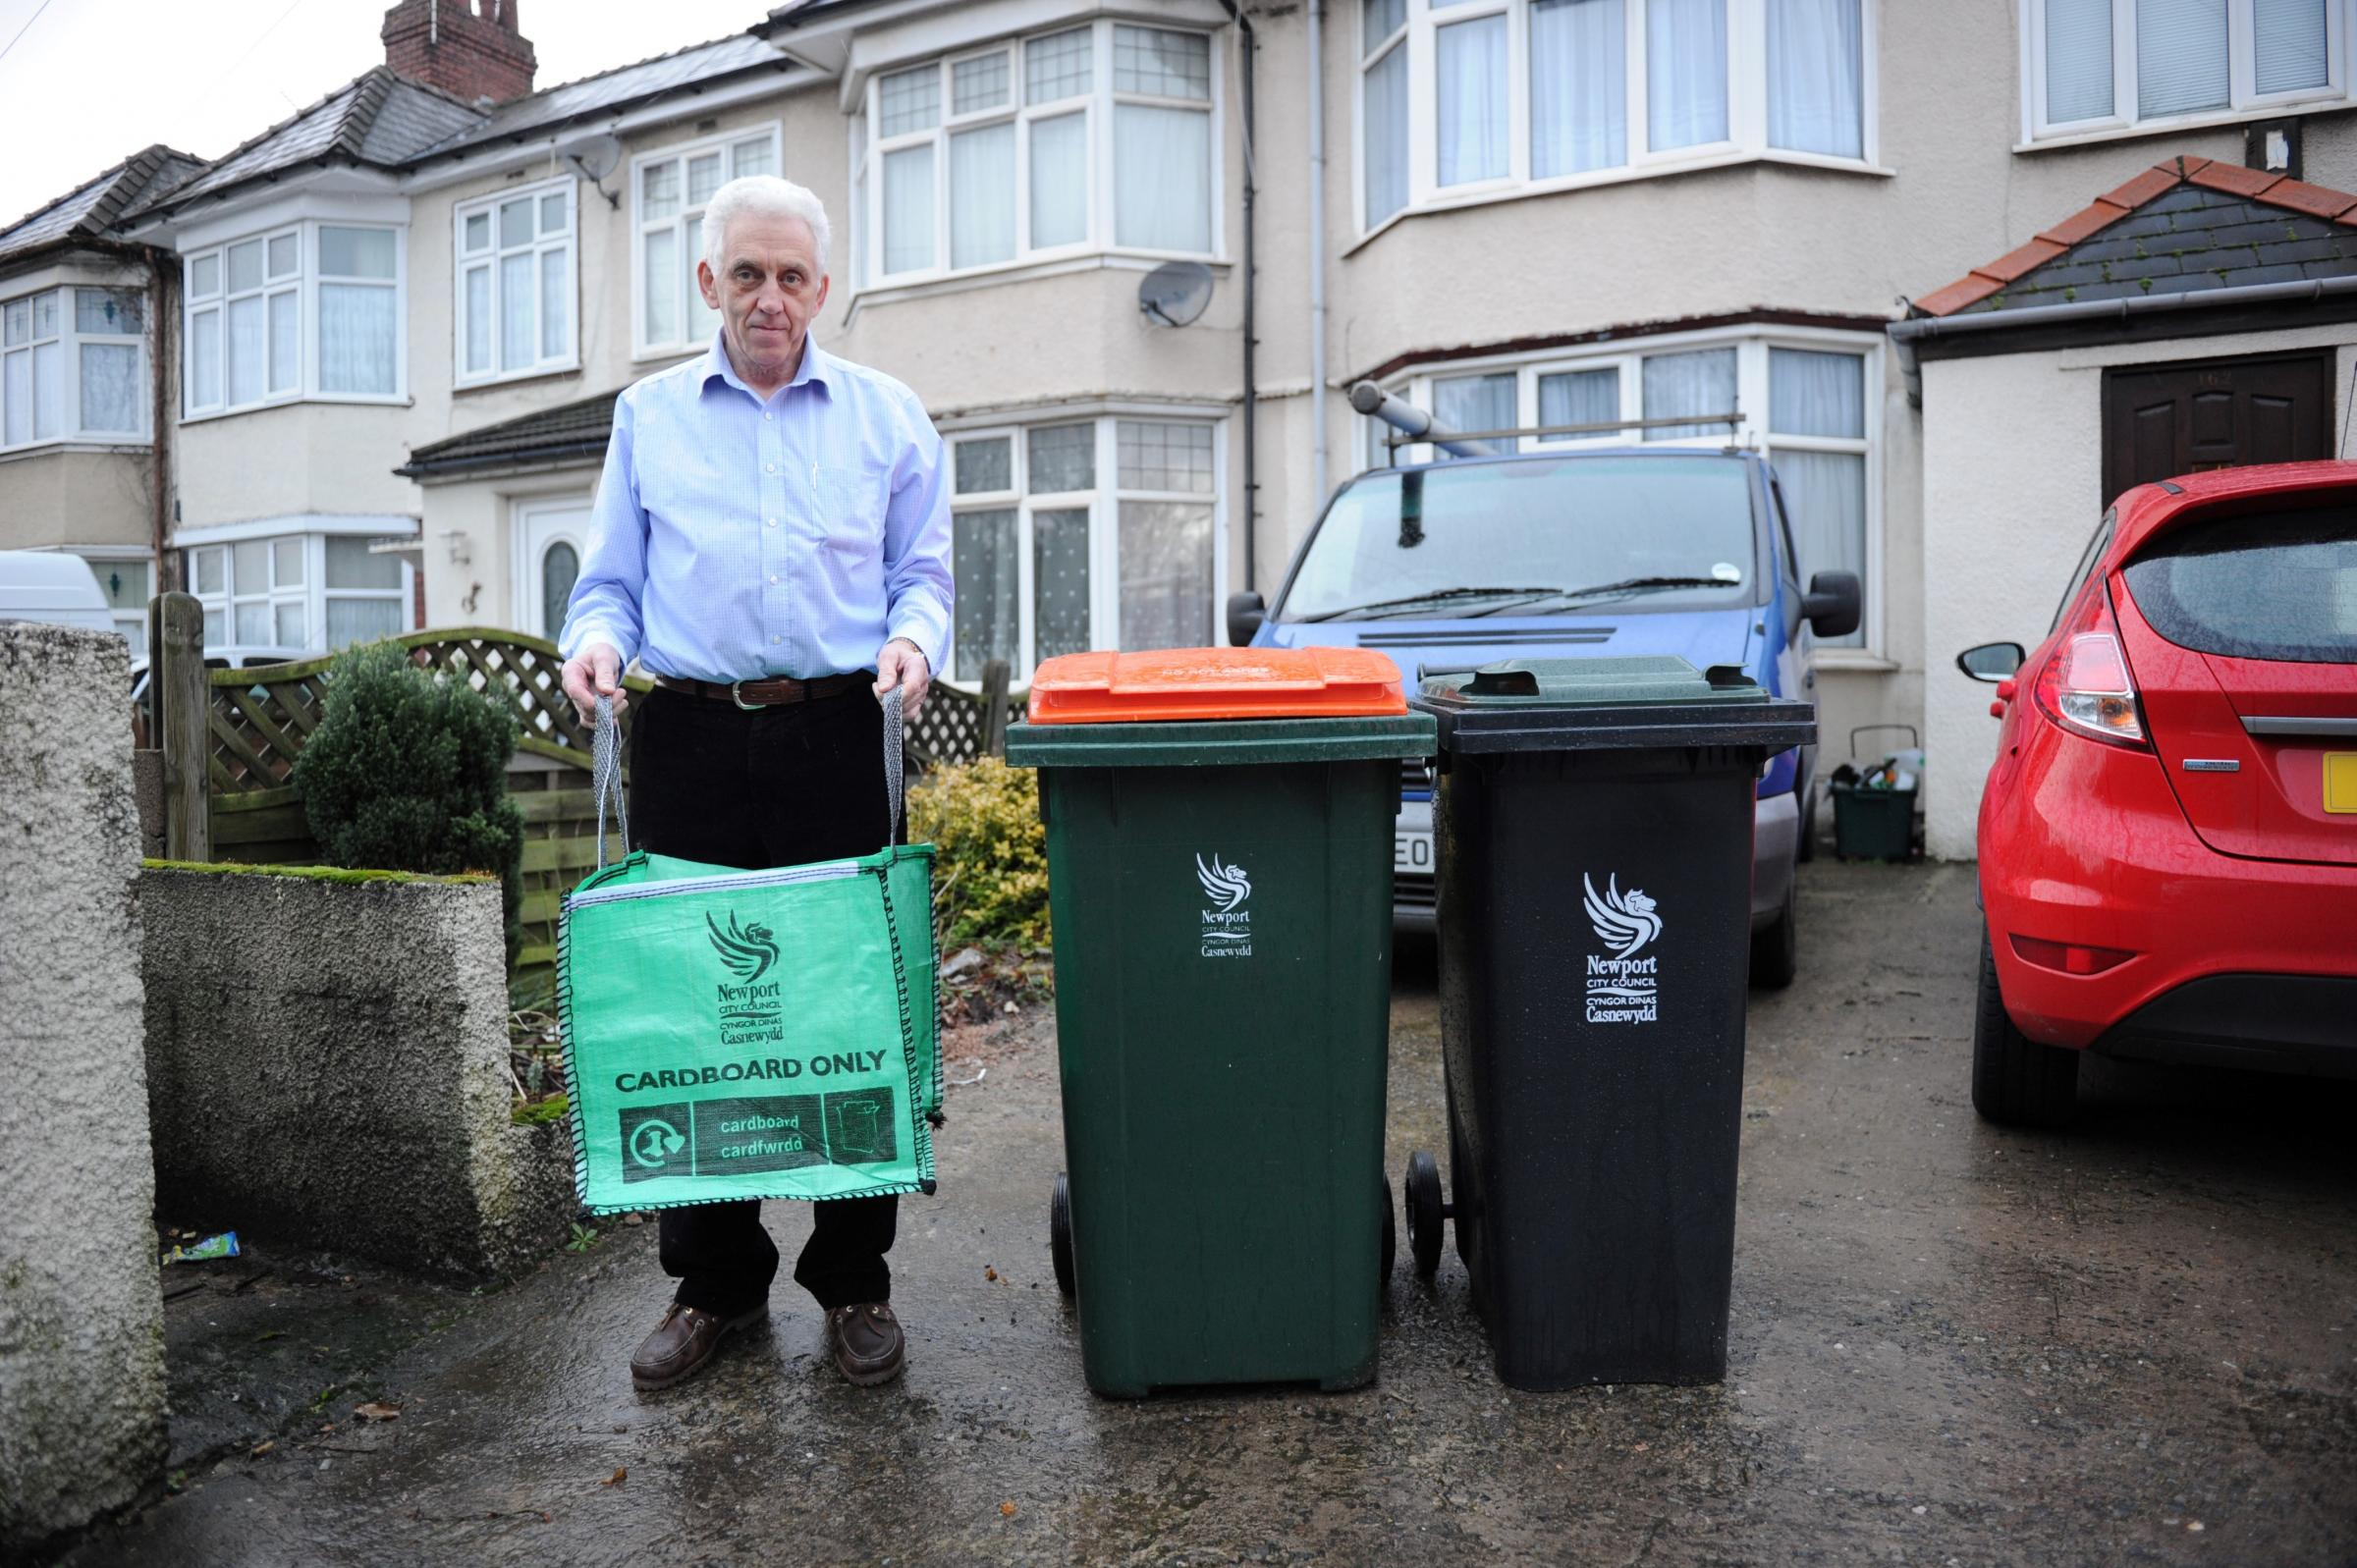 'No council support for recycling' says Newport resident